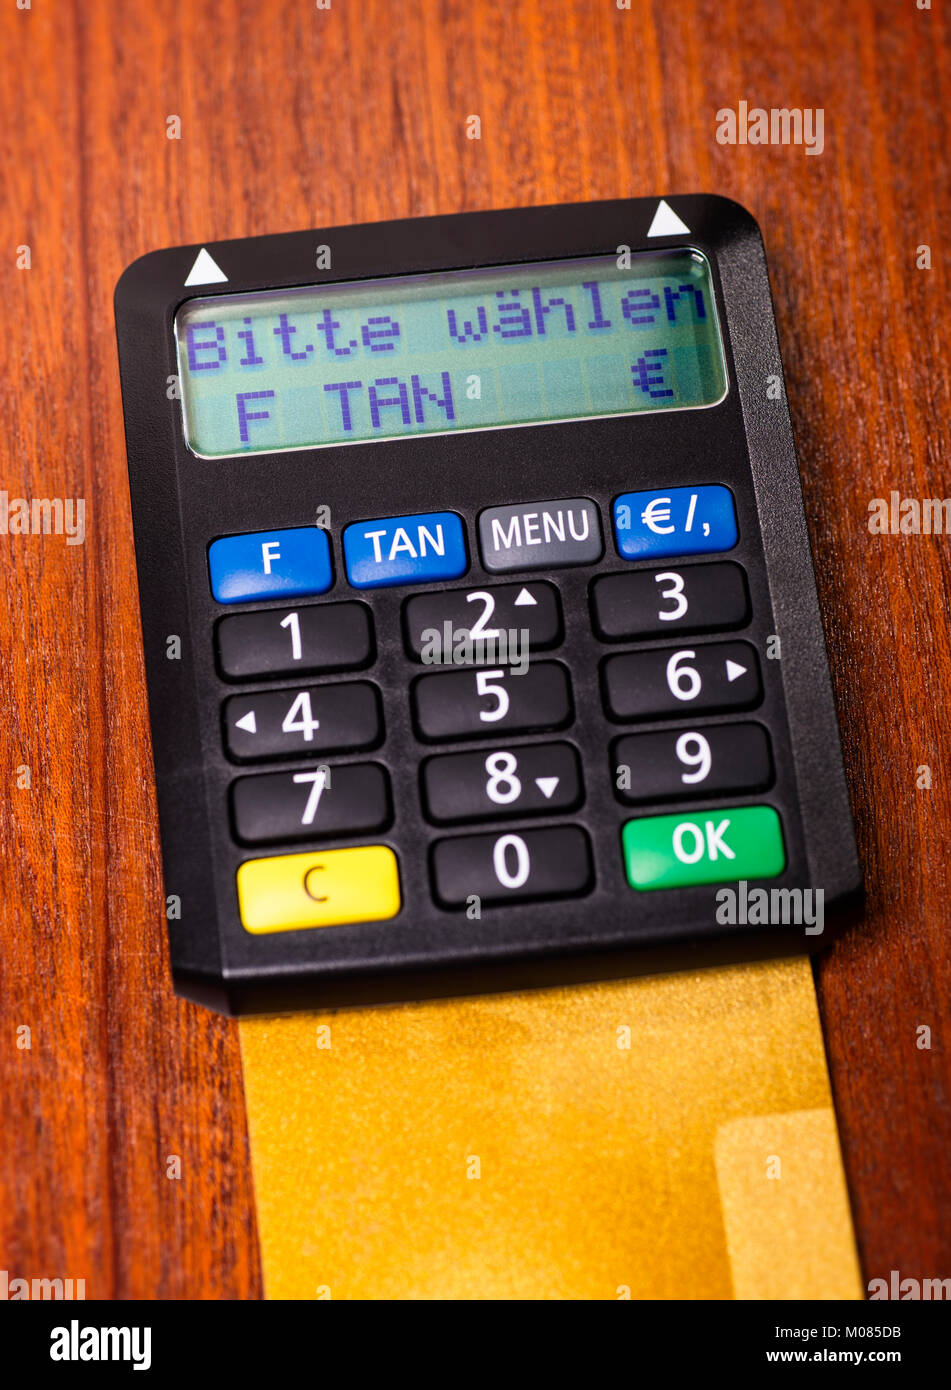 Tan generator with credit card lying on a desk and the request 'please select' on the display - Stock Image